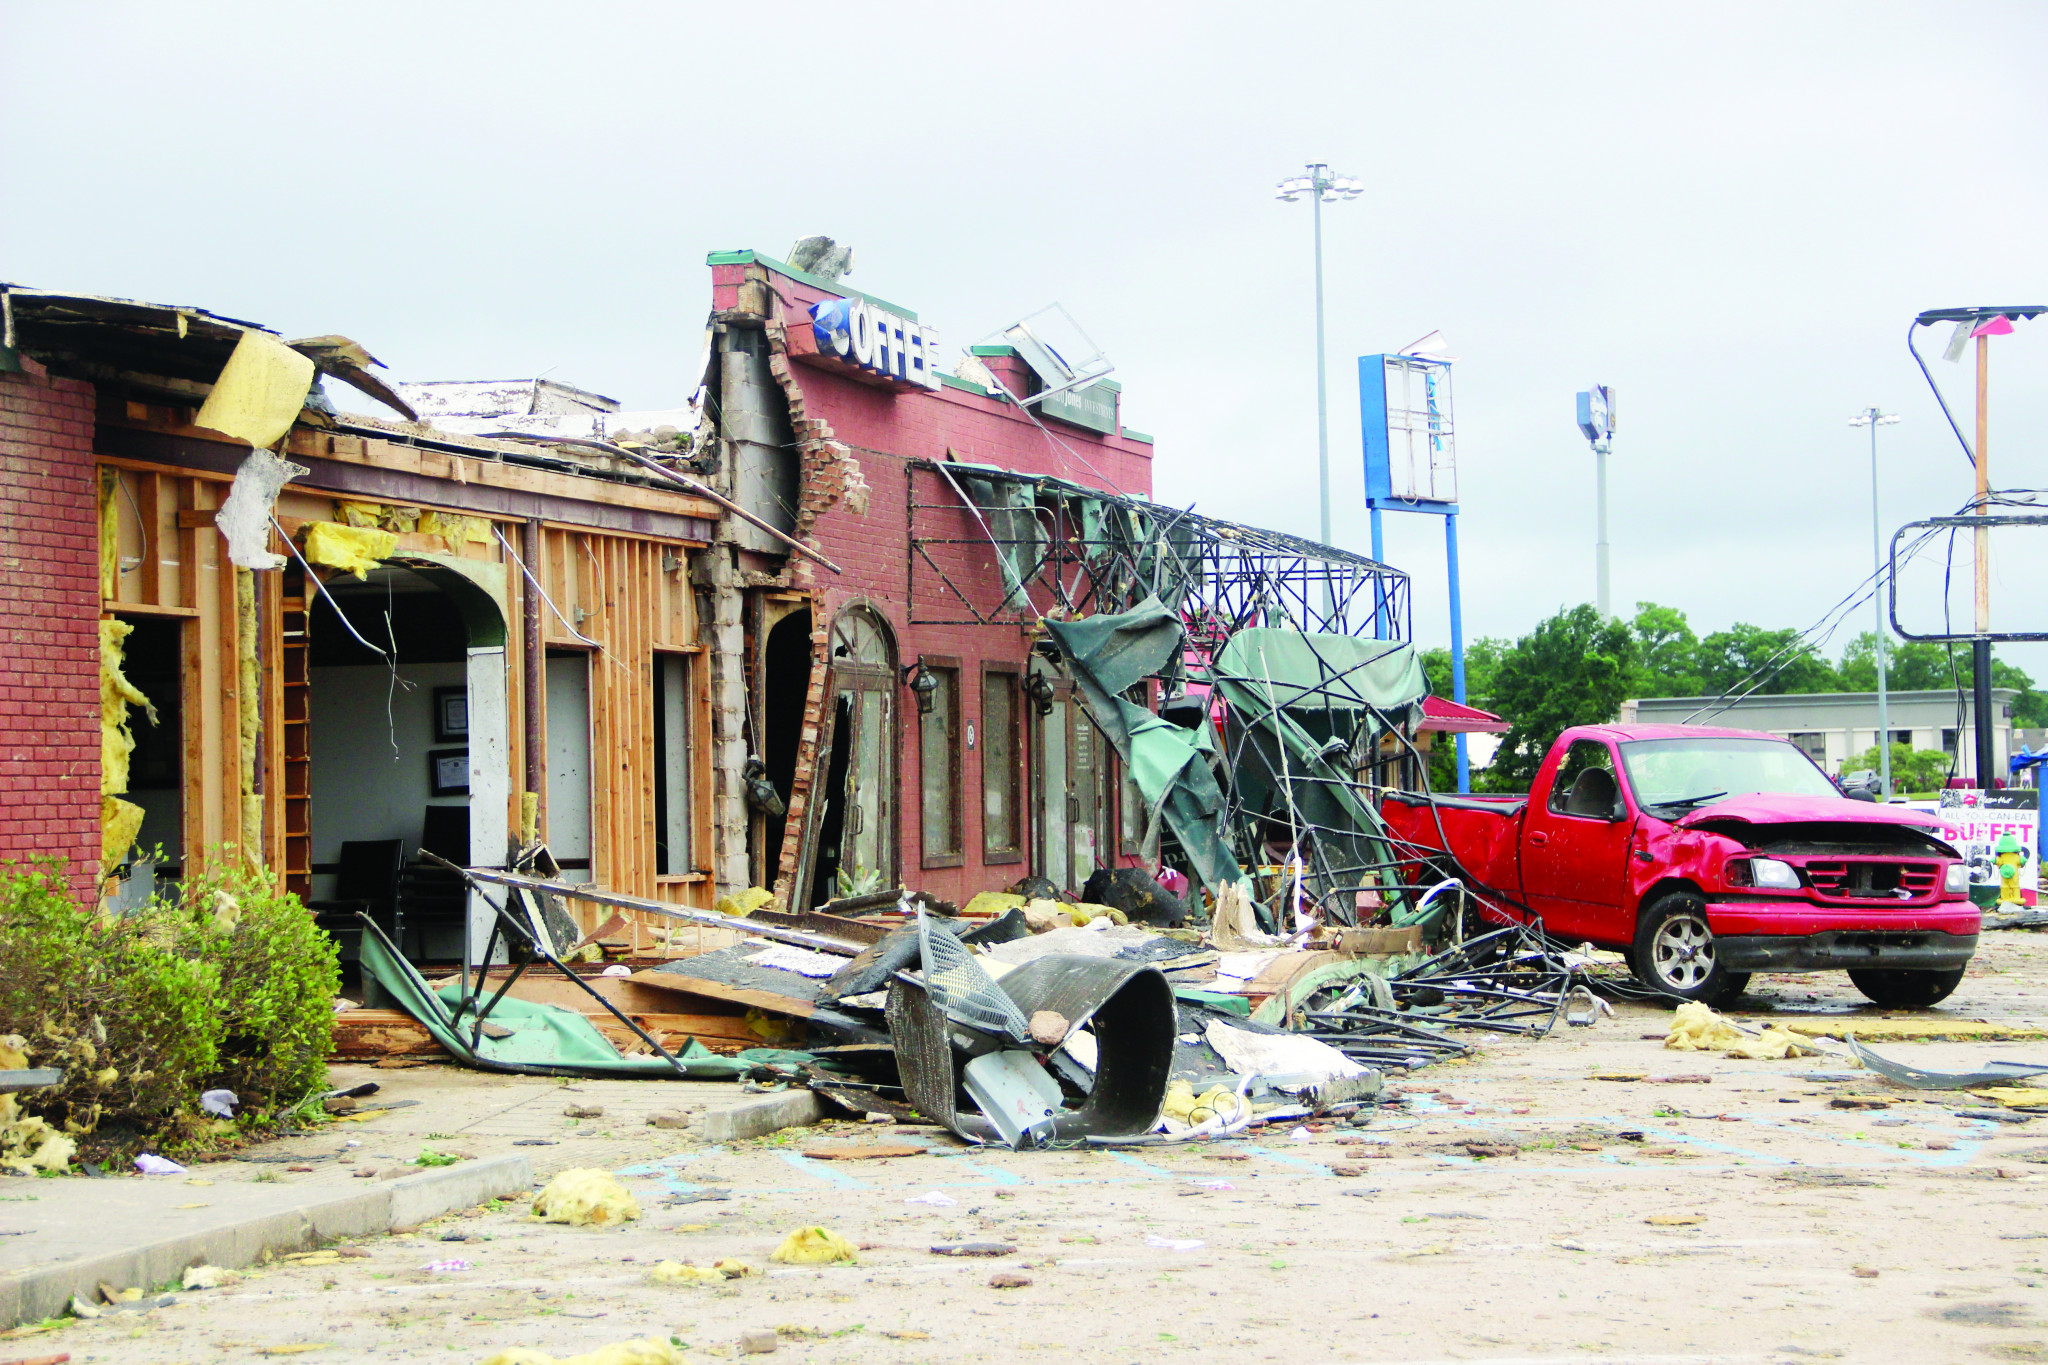 """<span style=""""font-size:12pt""""><span style=""""font-family:&quot;Times New Roman&quot;"""">The destroyed Courtesy Loans, Parish Press and Edward Jones businesses the morning after the tornado.</span></span>"""